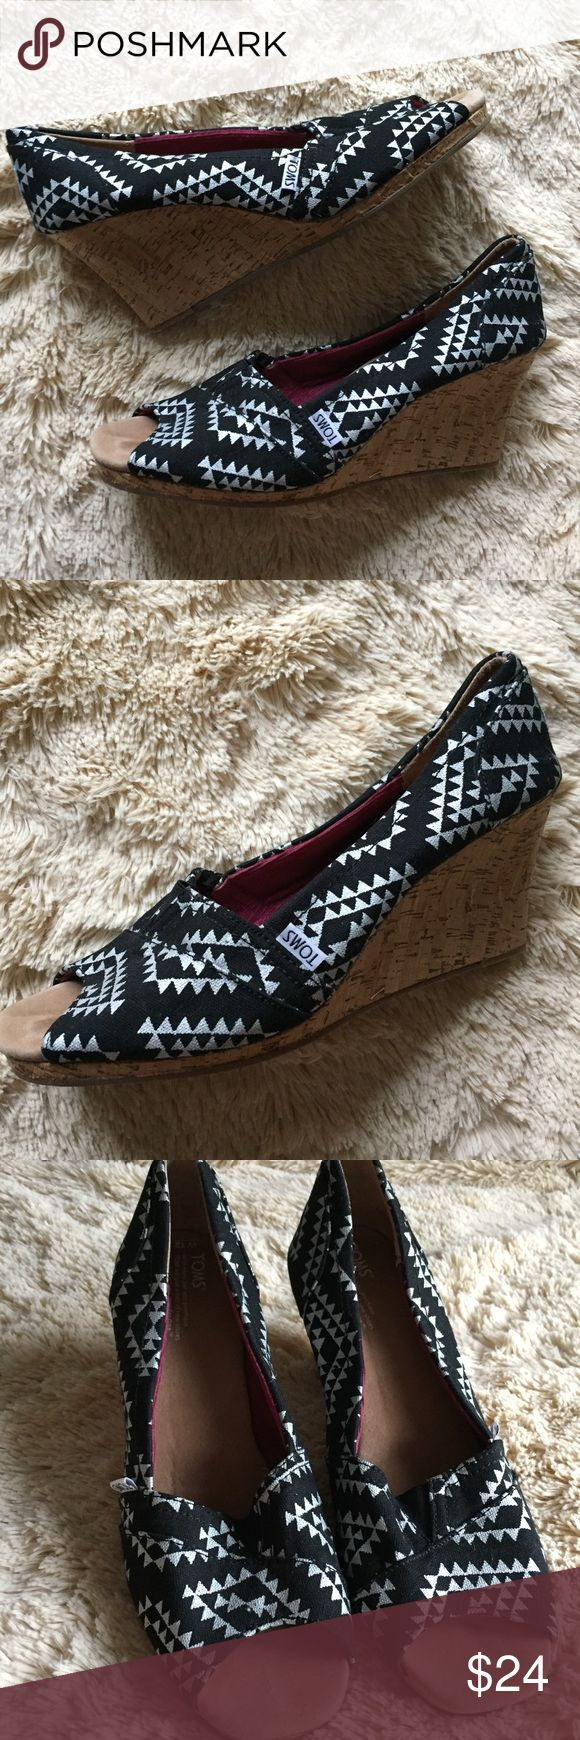 New Listing! Toms Wedge Heels Toms patterned wedge heels. Never worn, NWOT! Very comfortable and stylish. TOMS Shoes Wedges